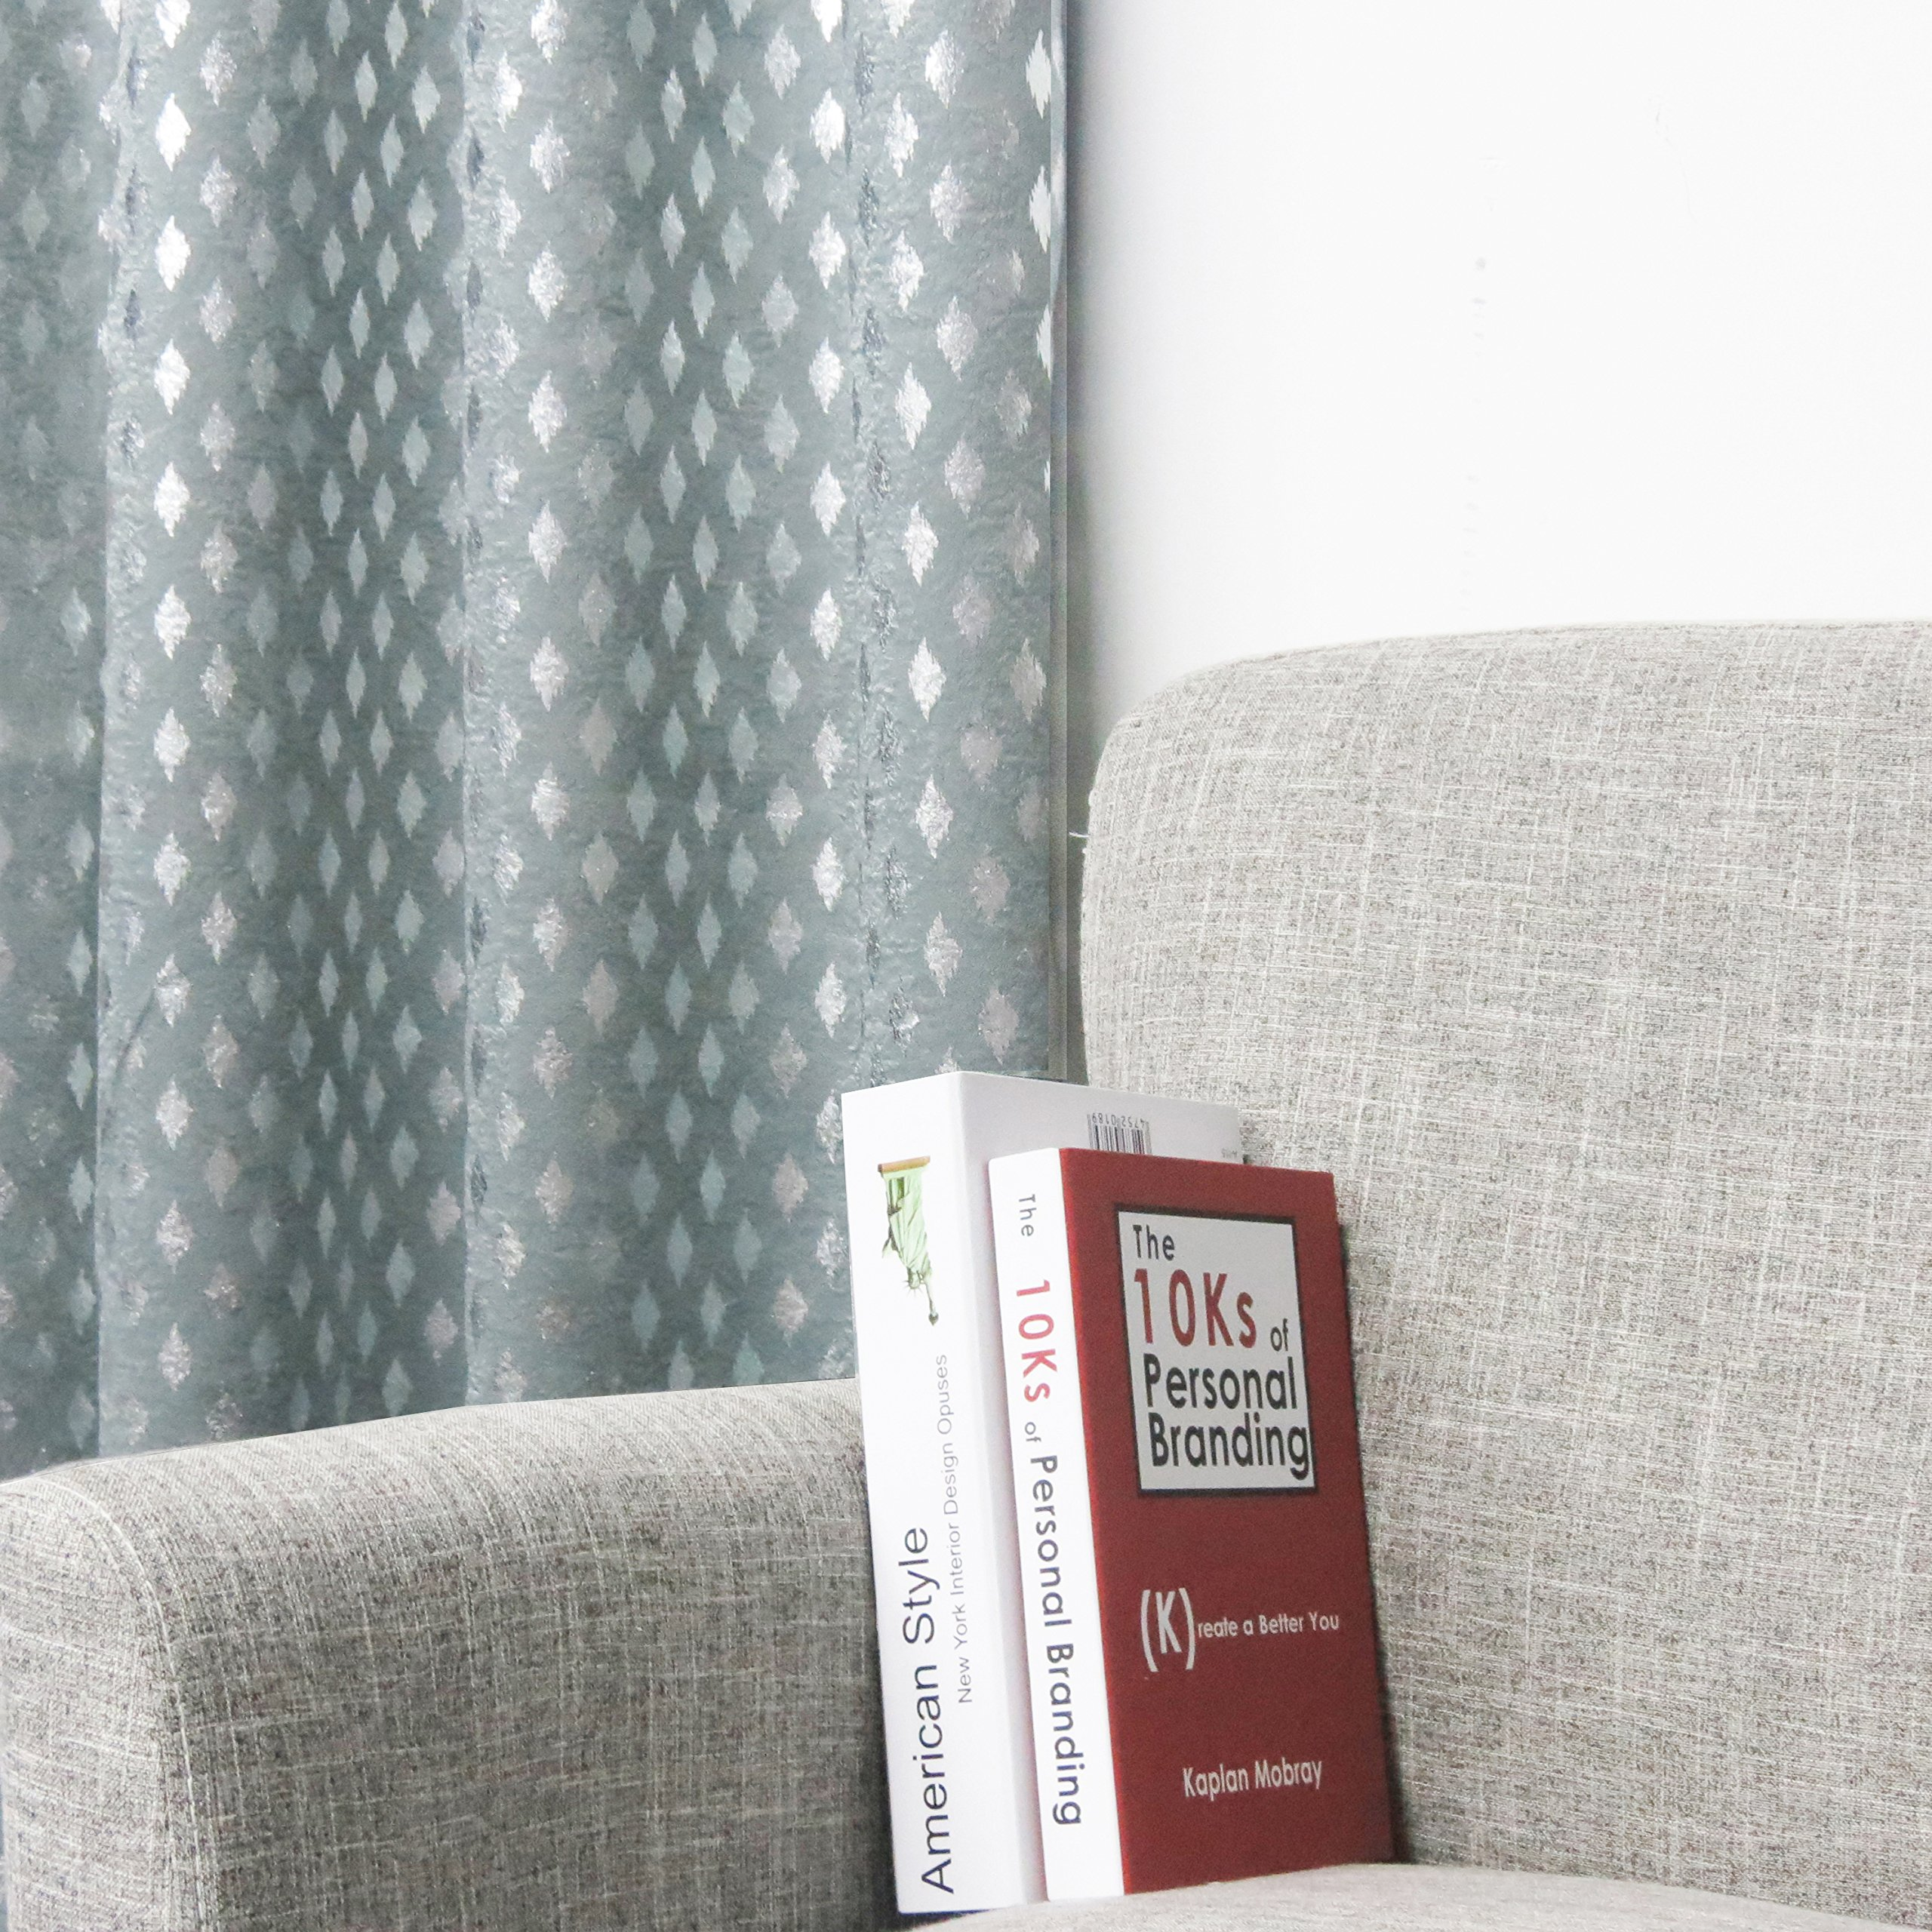 SUO AI TEXTILE Raindrop Suede Like Metallic Silver Print Darkening Window Treatment Thermal Insulated Curtains (Two Panels, 54x63, Spa) by SUO AI TEXTILE (Image #3)